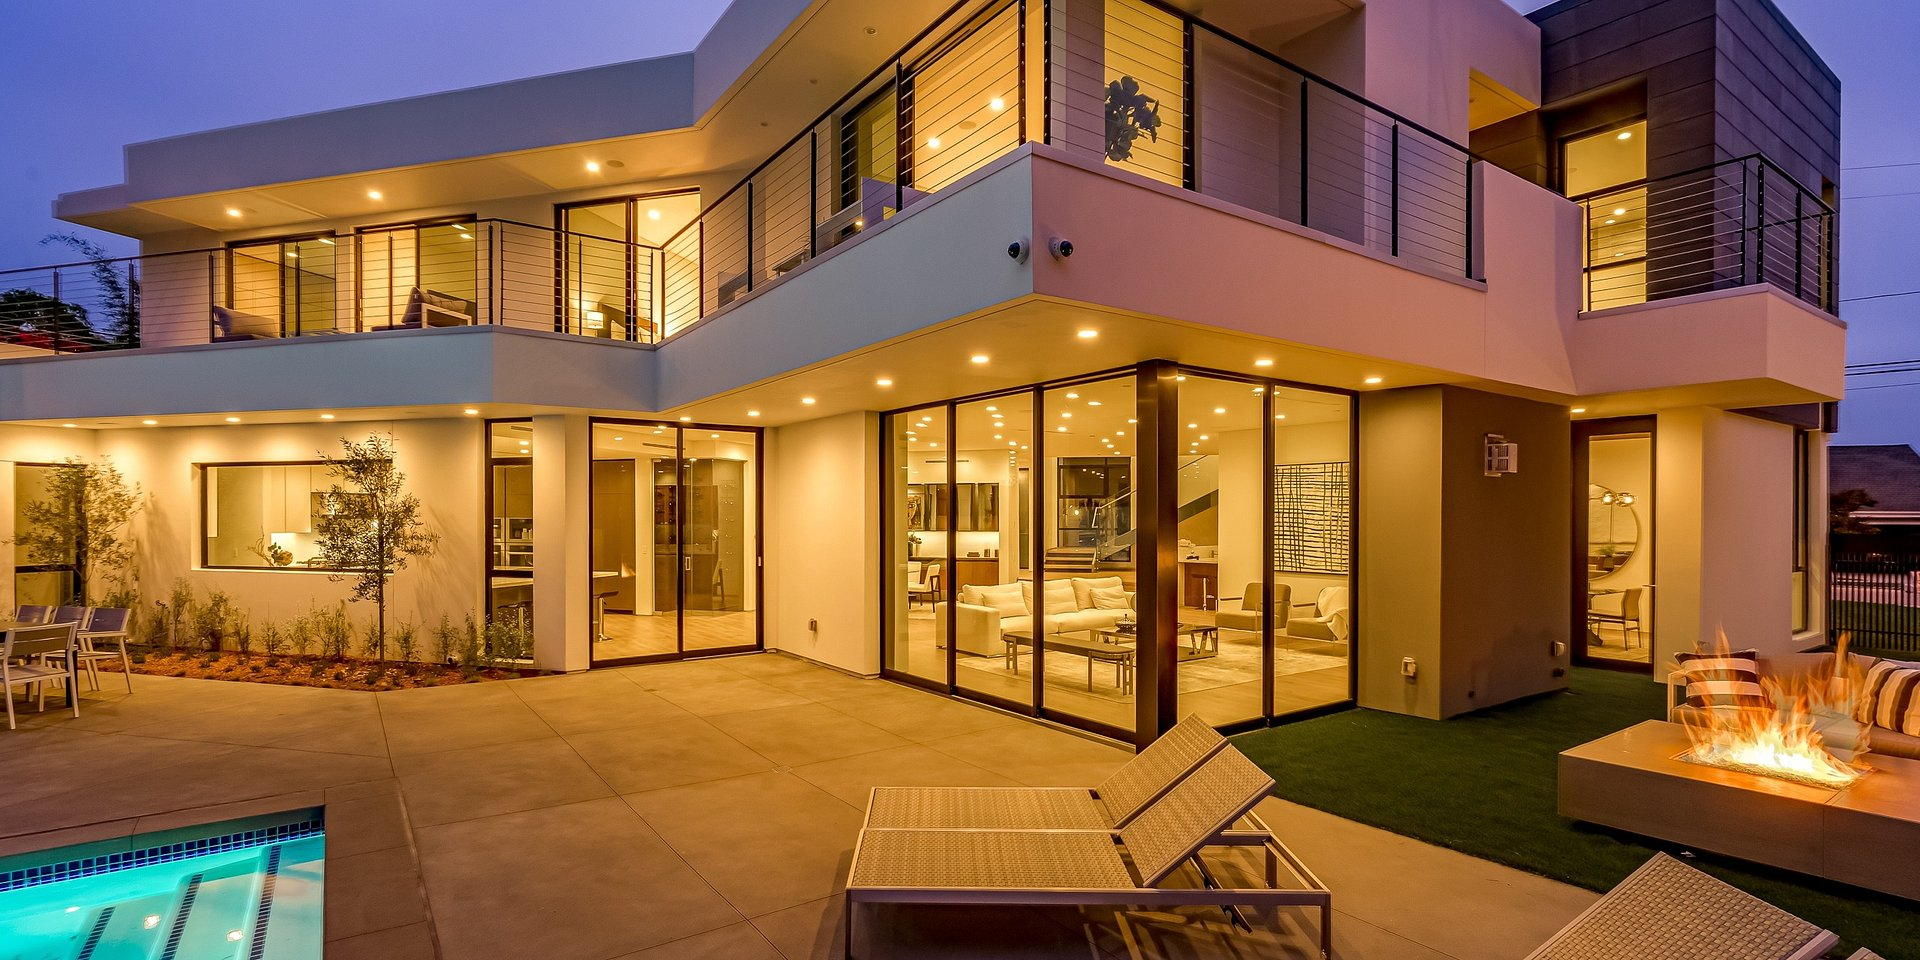 Coldwell Banker Residential Brokerage Lists Pacific Palisades Property for $6.785 Million